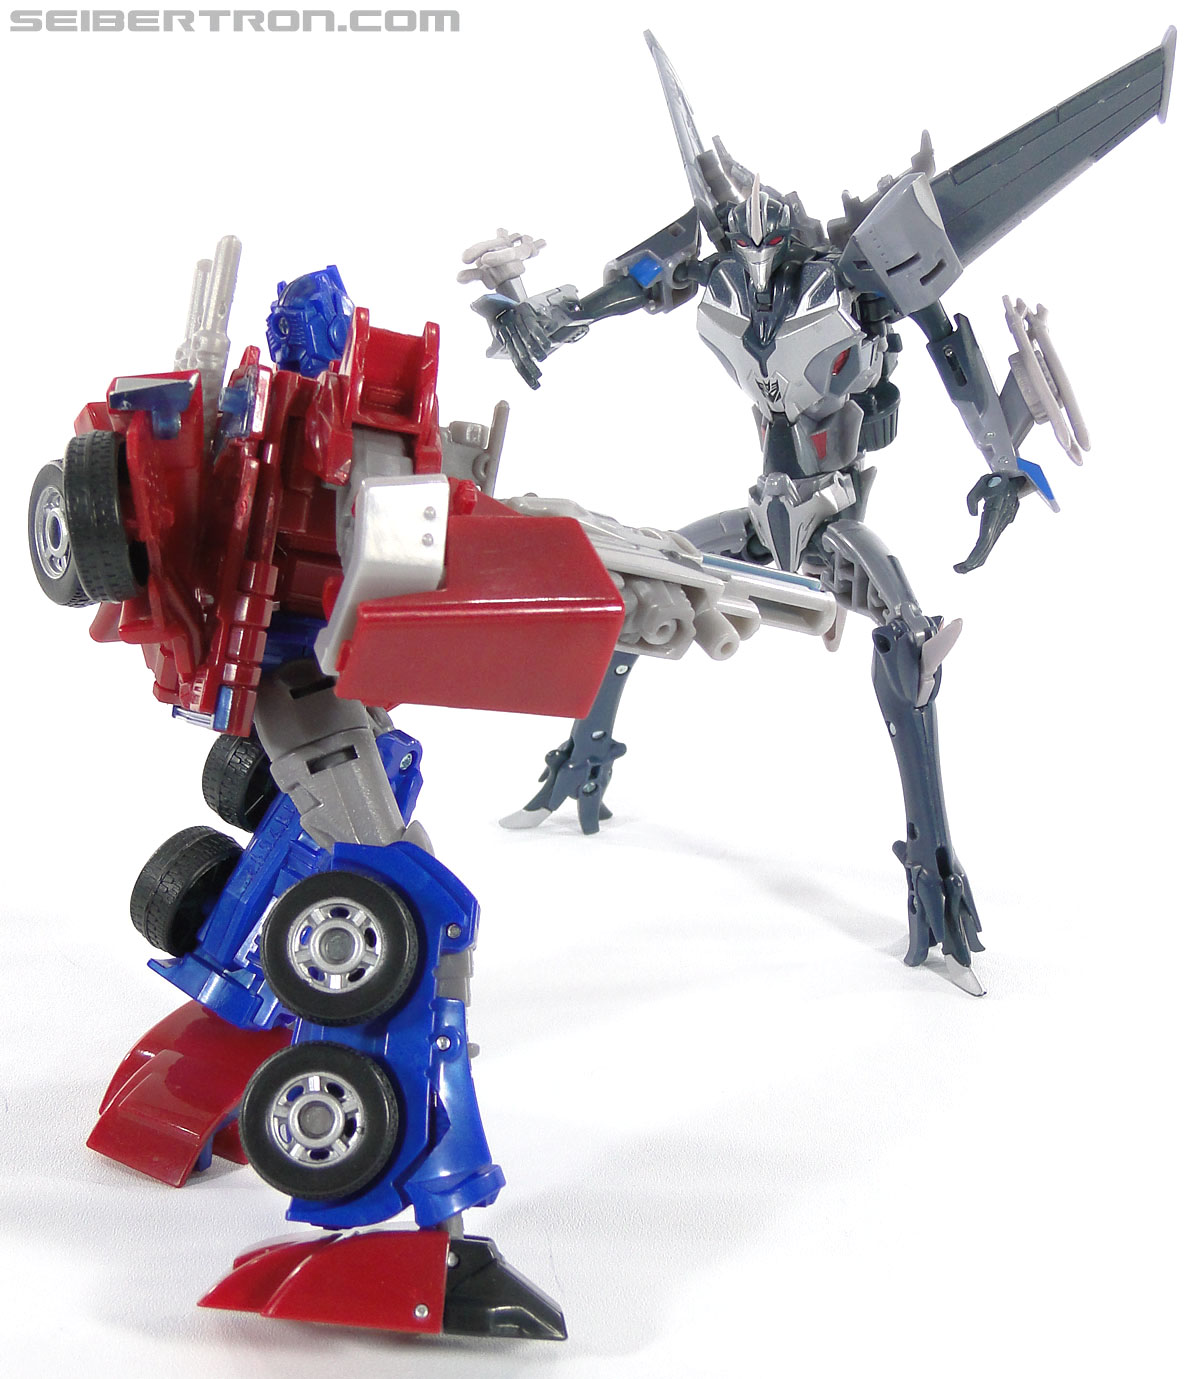 Transformers Prime: First Edition Starscream (Image #129 of 136)